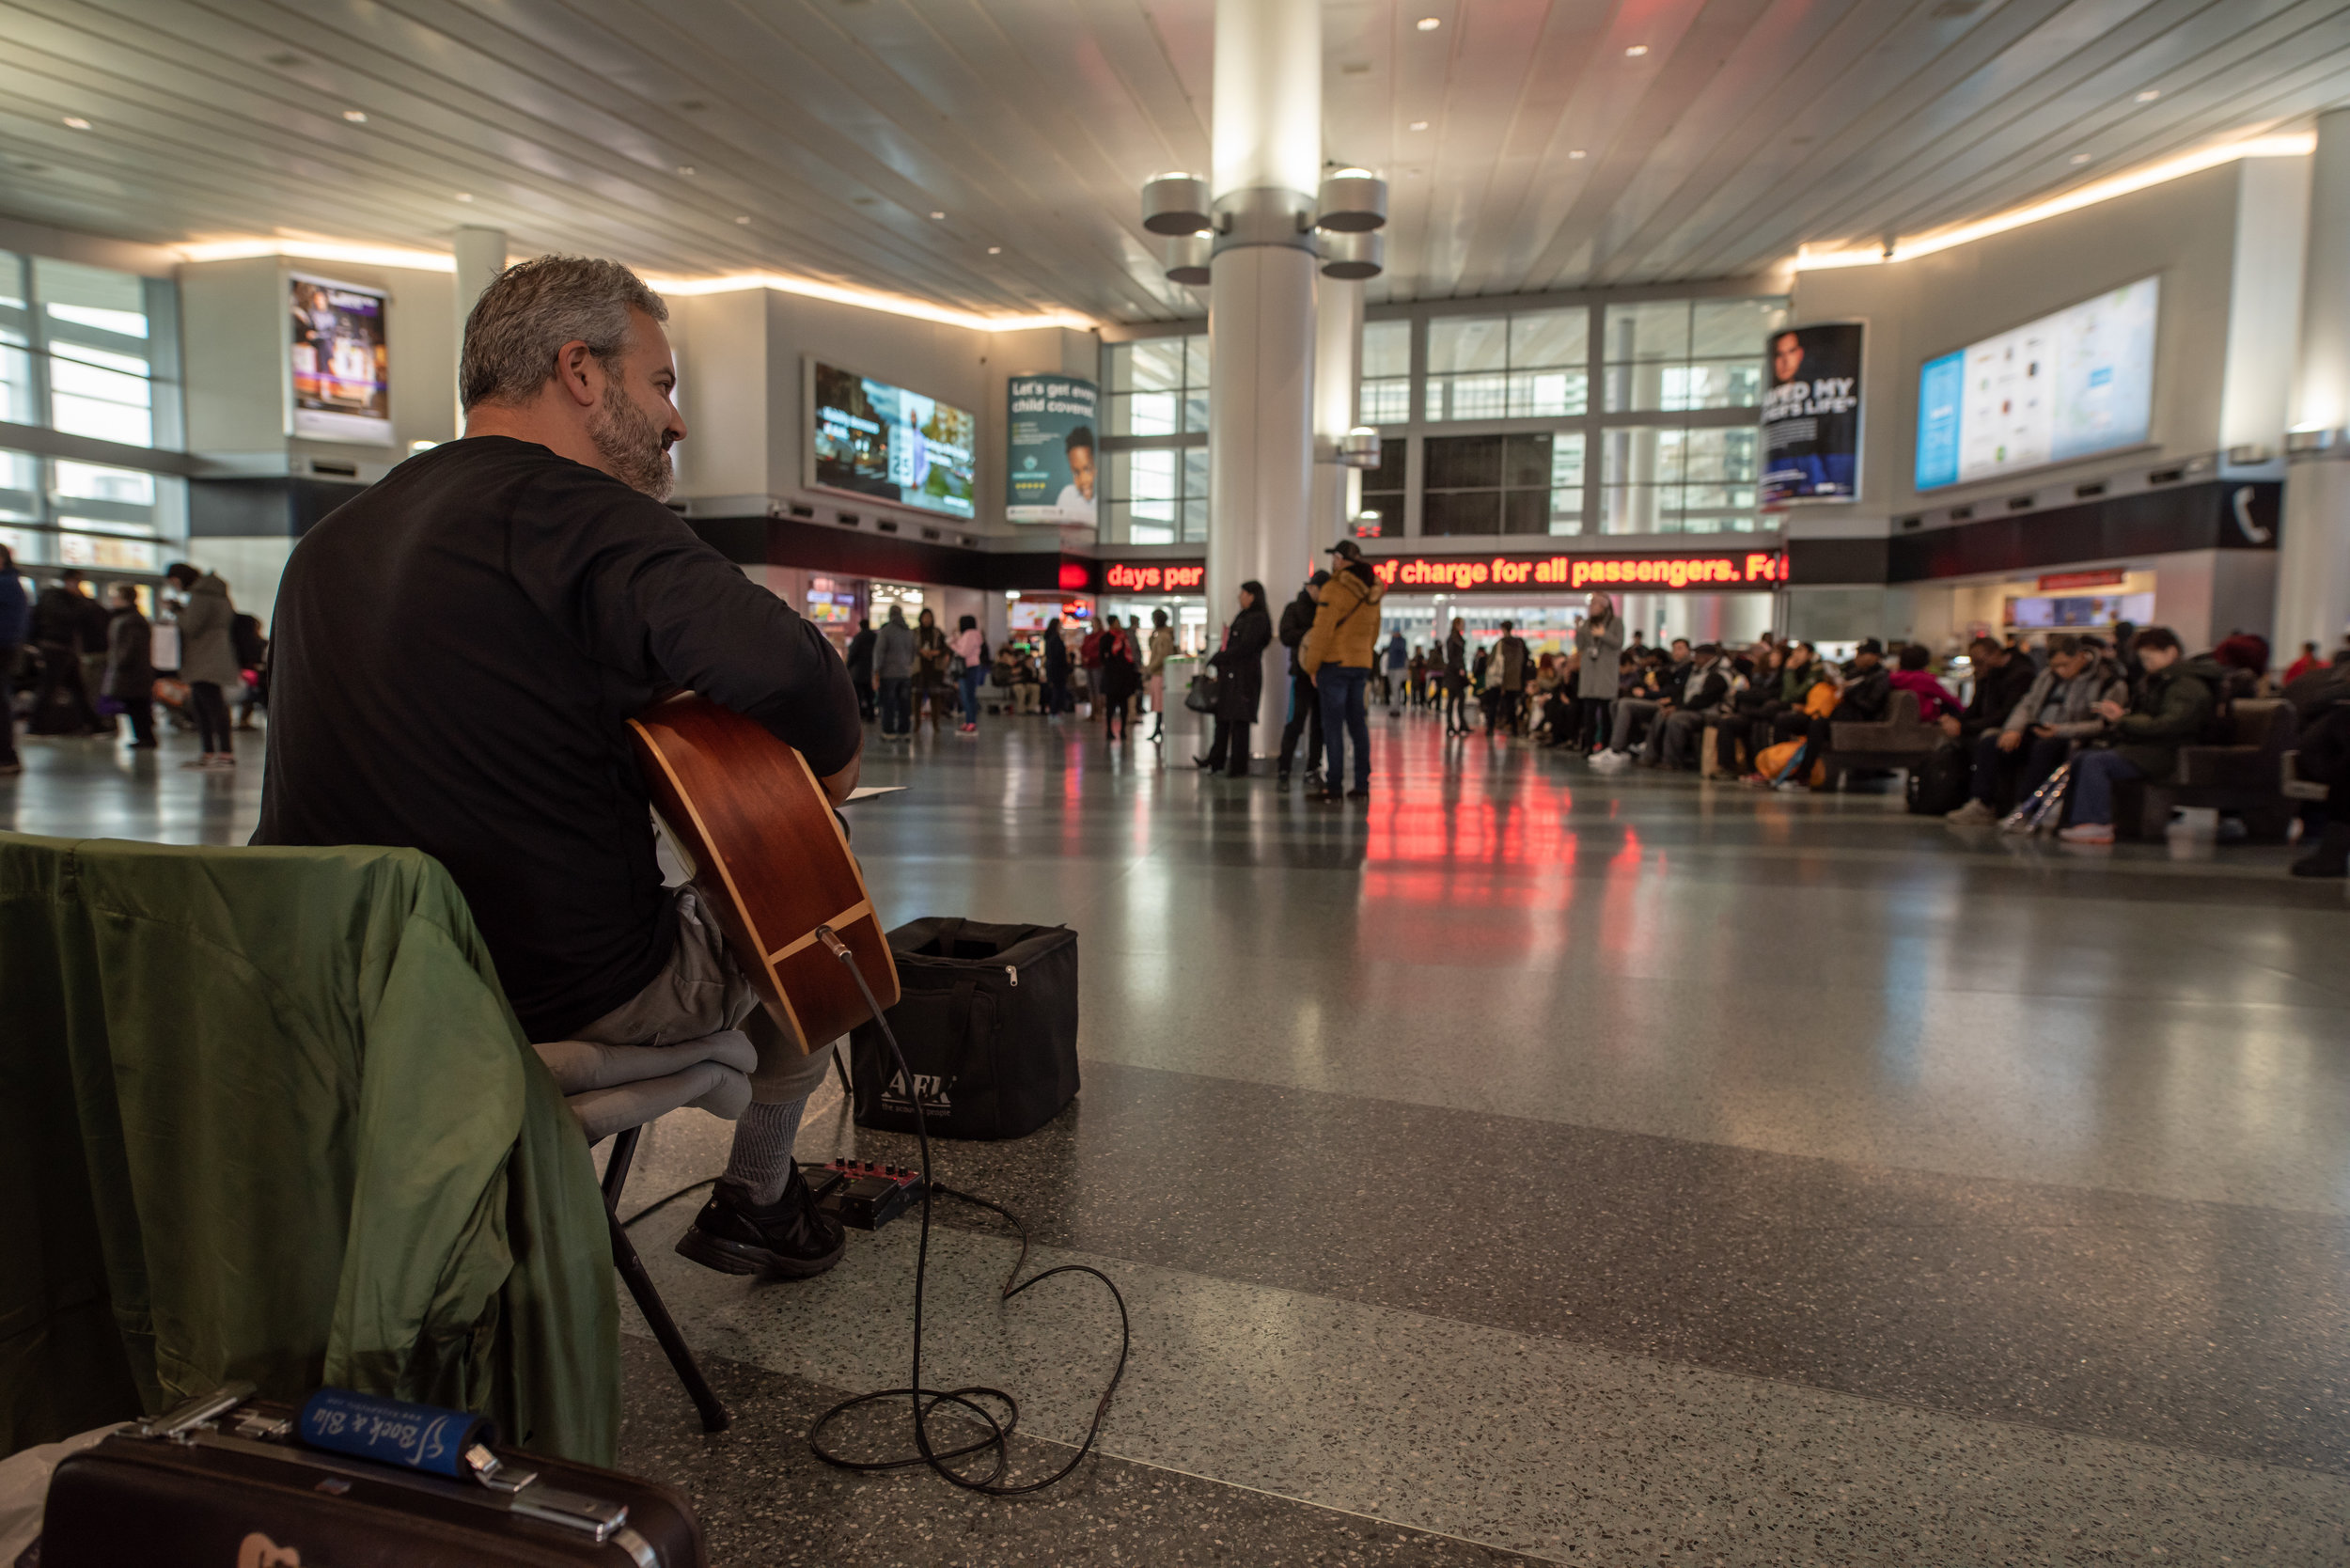 Glenn performs at Whitehall terminal for the Staten Island Ferry.